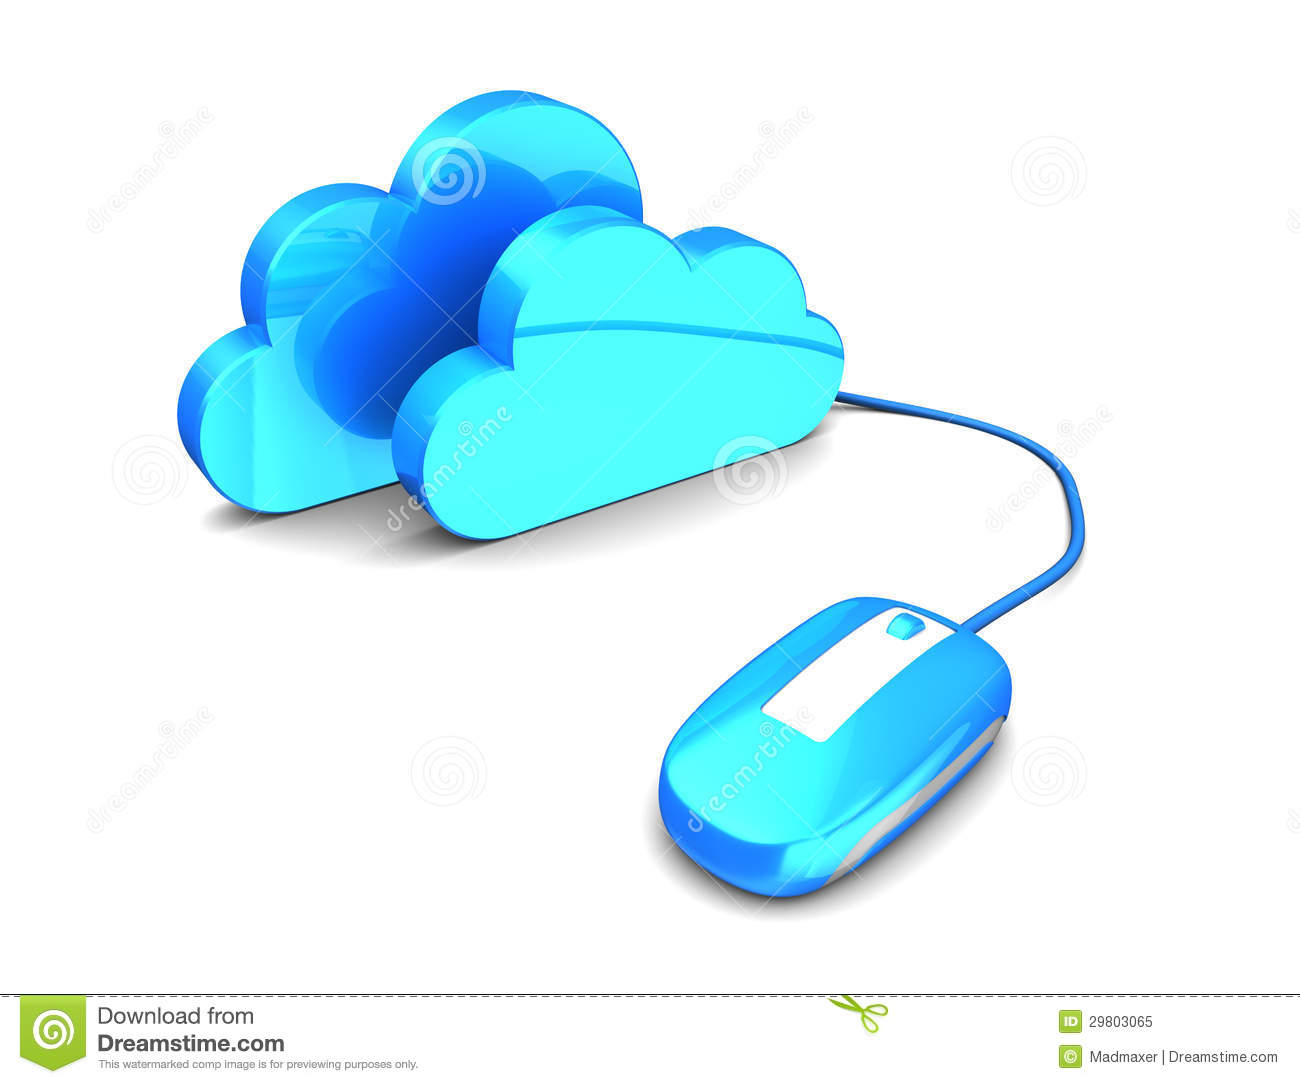 ... 3d illustration of mnouse connected to clouds, cloud storage concept: dreamstime.com/royalty-free-stock-photo-abstract-d-illustration...